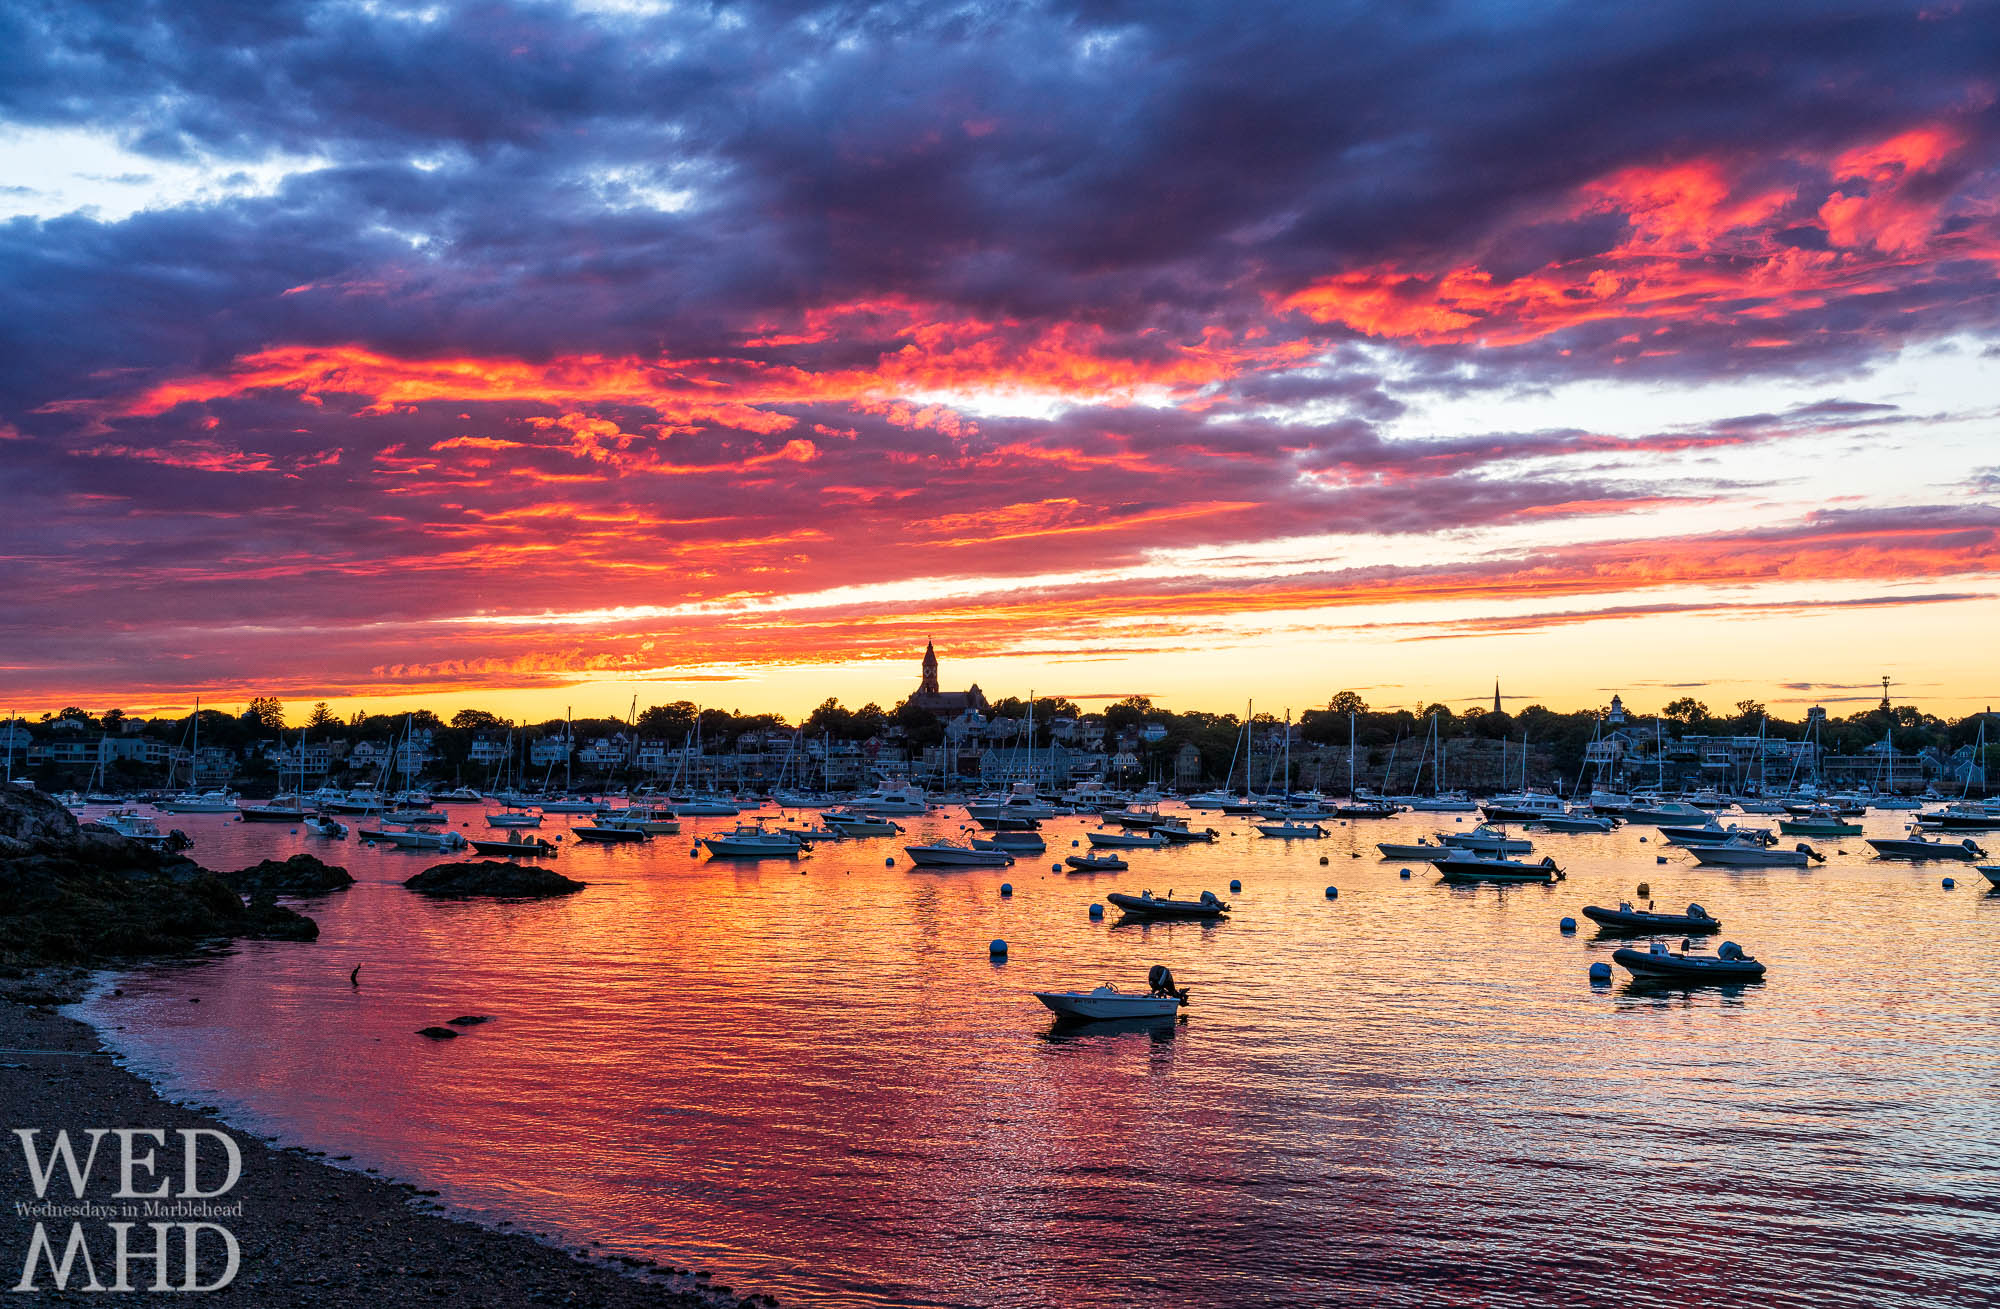 My last stop chasing the light after a summer storm passed over Marblehead was at the Pleon yacht club where I caught a nice afterglow in the evening sky